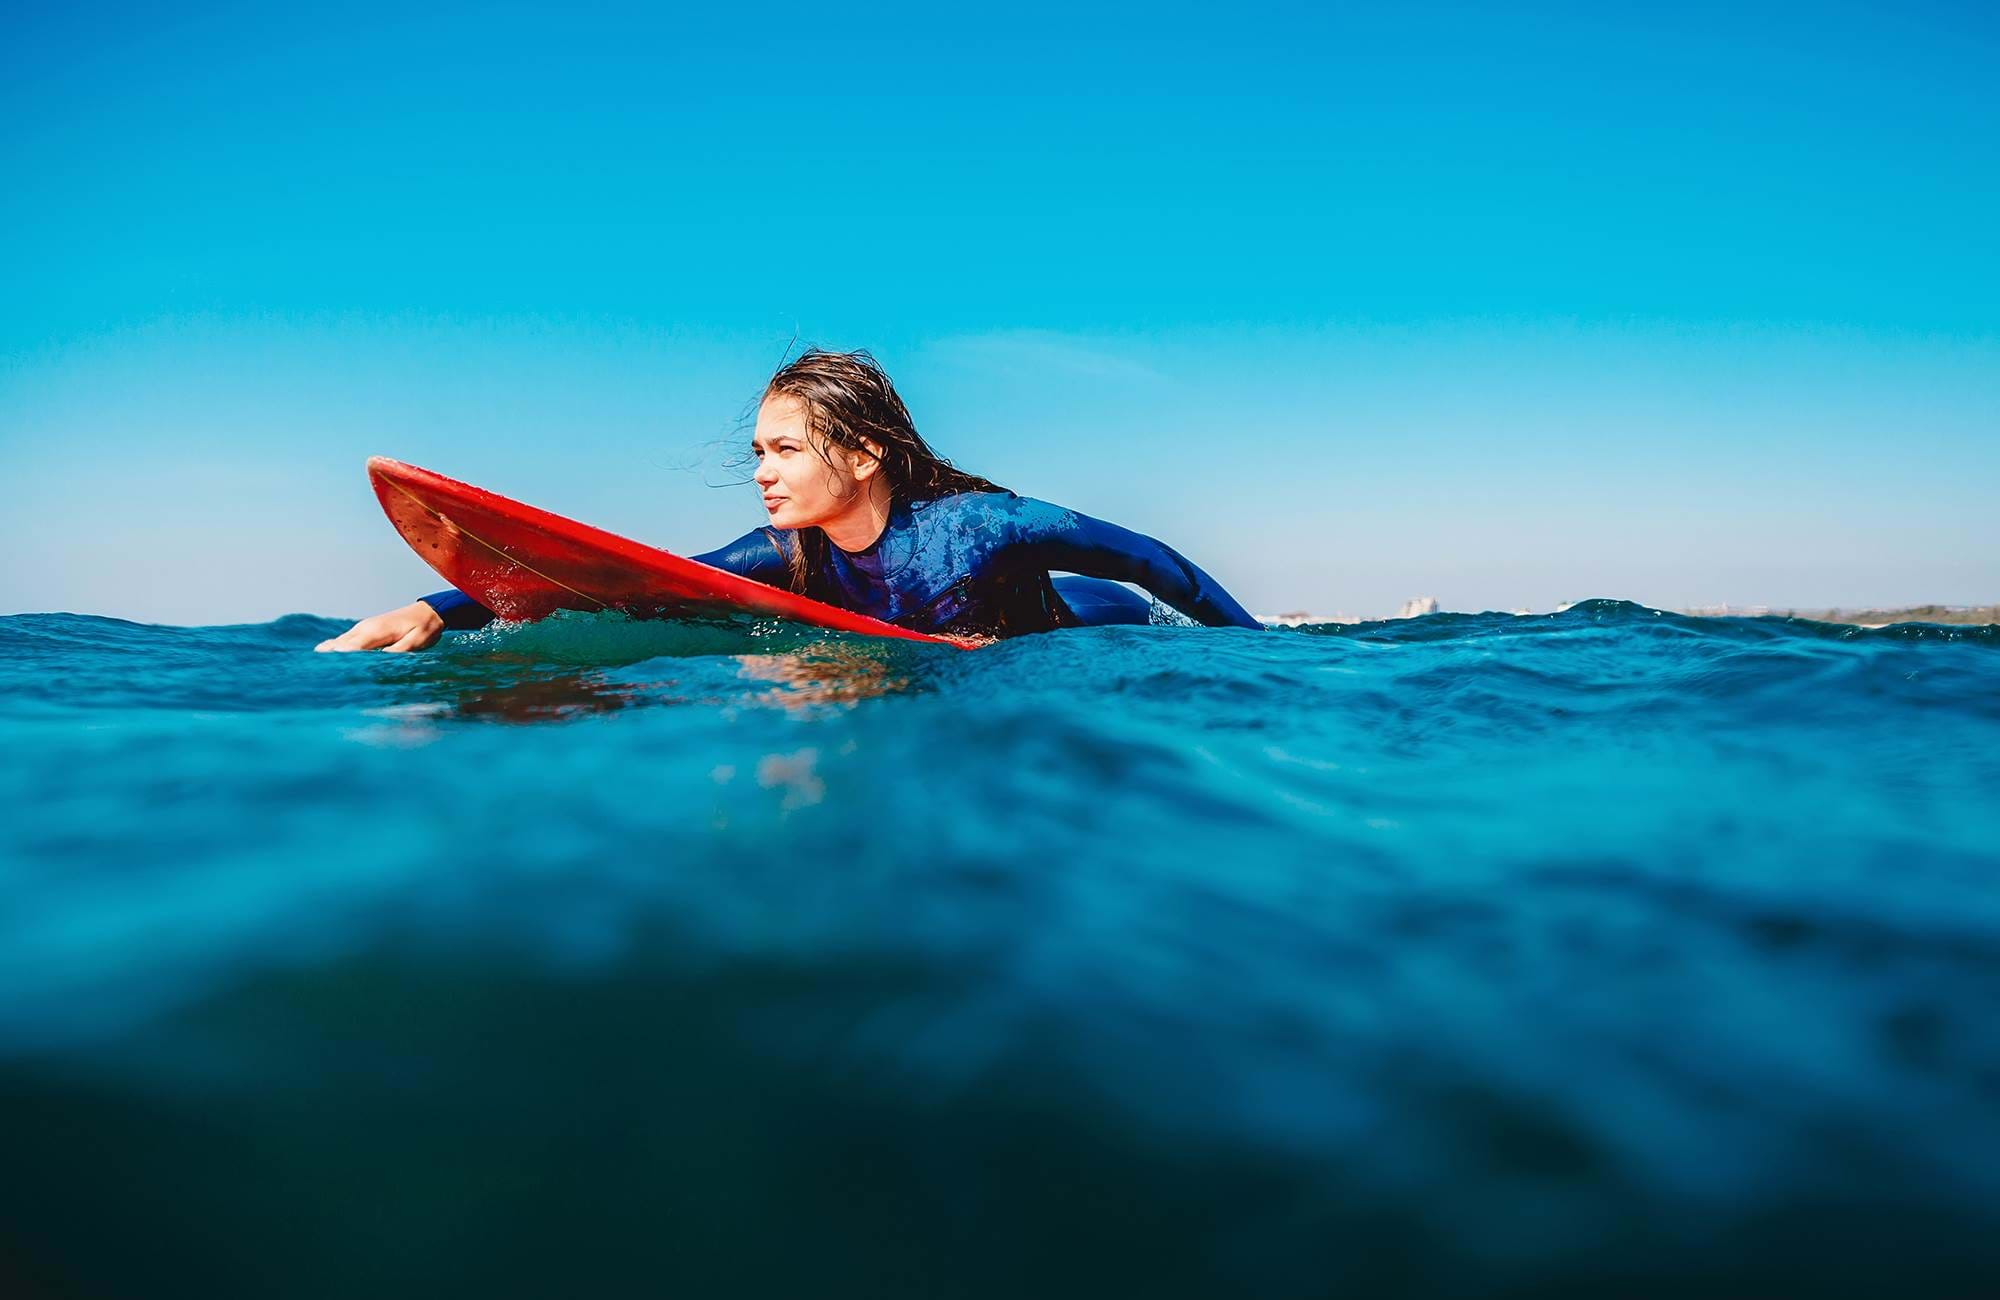 surfing-woman-paddling-calm-water-cover